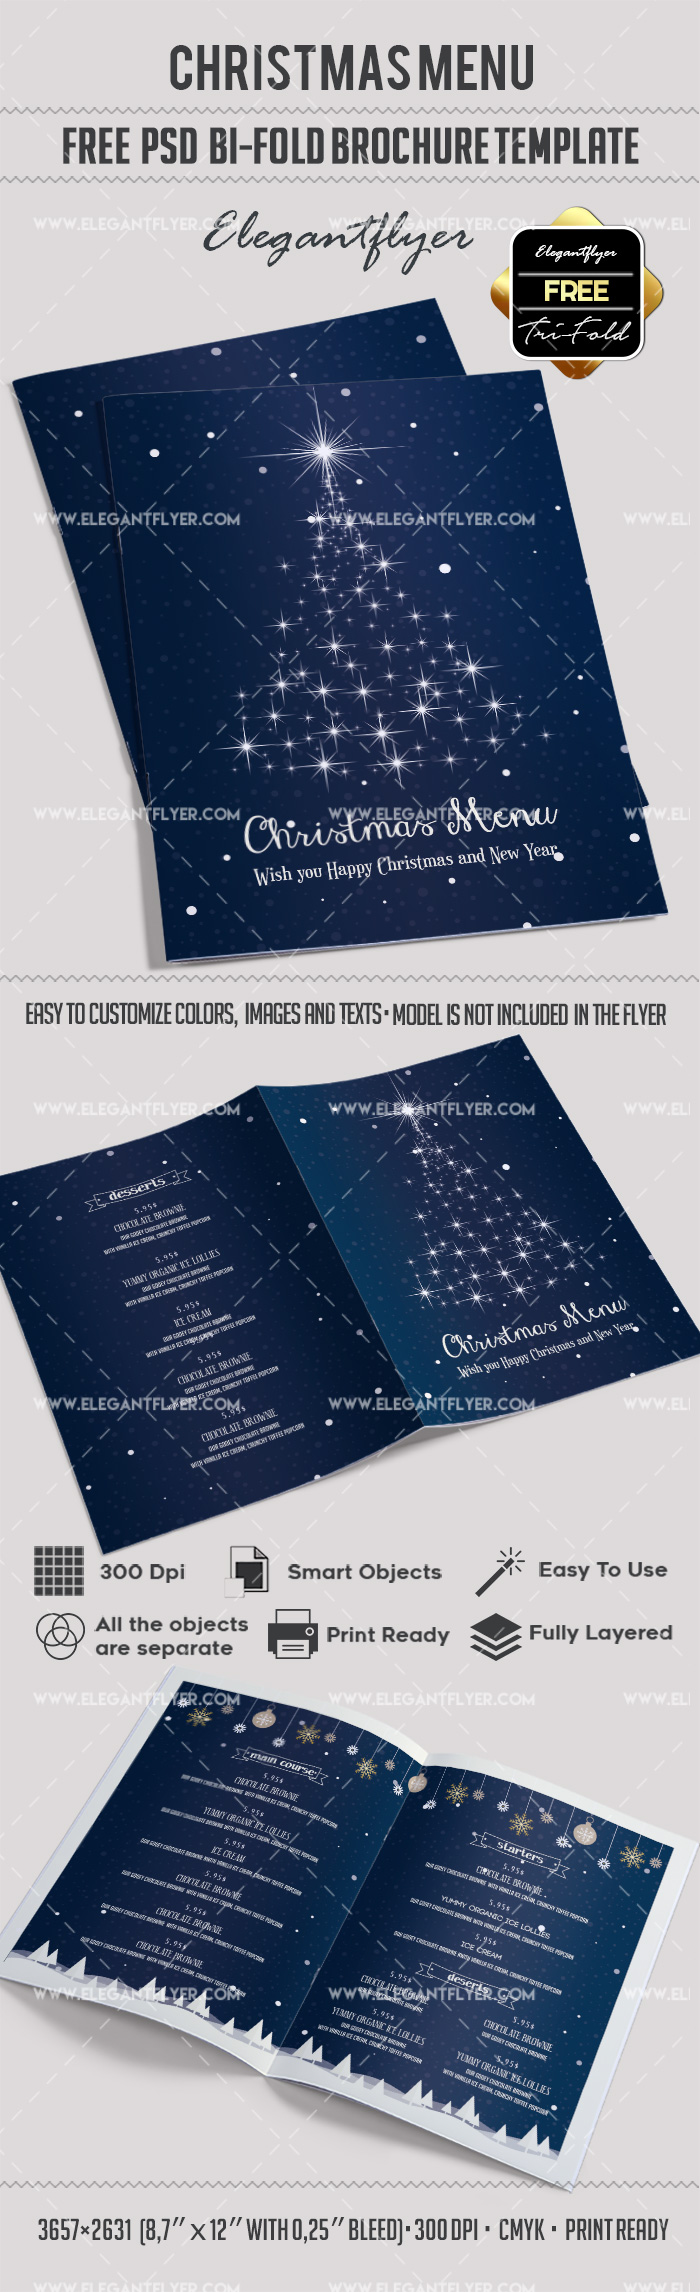 Free christmas menu bi fold psd brochure template by for Brochure design psd templates